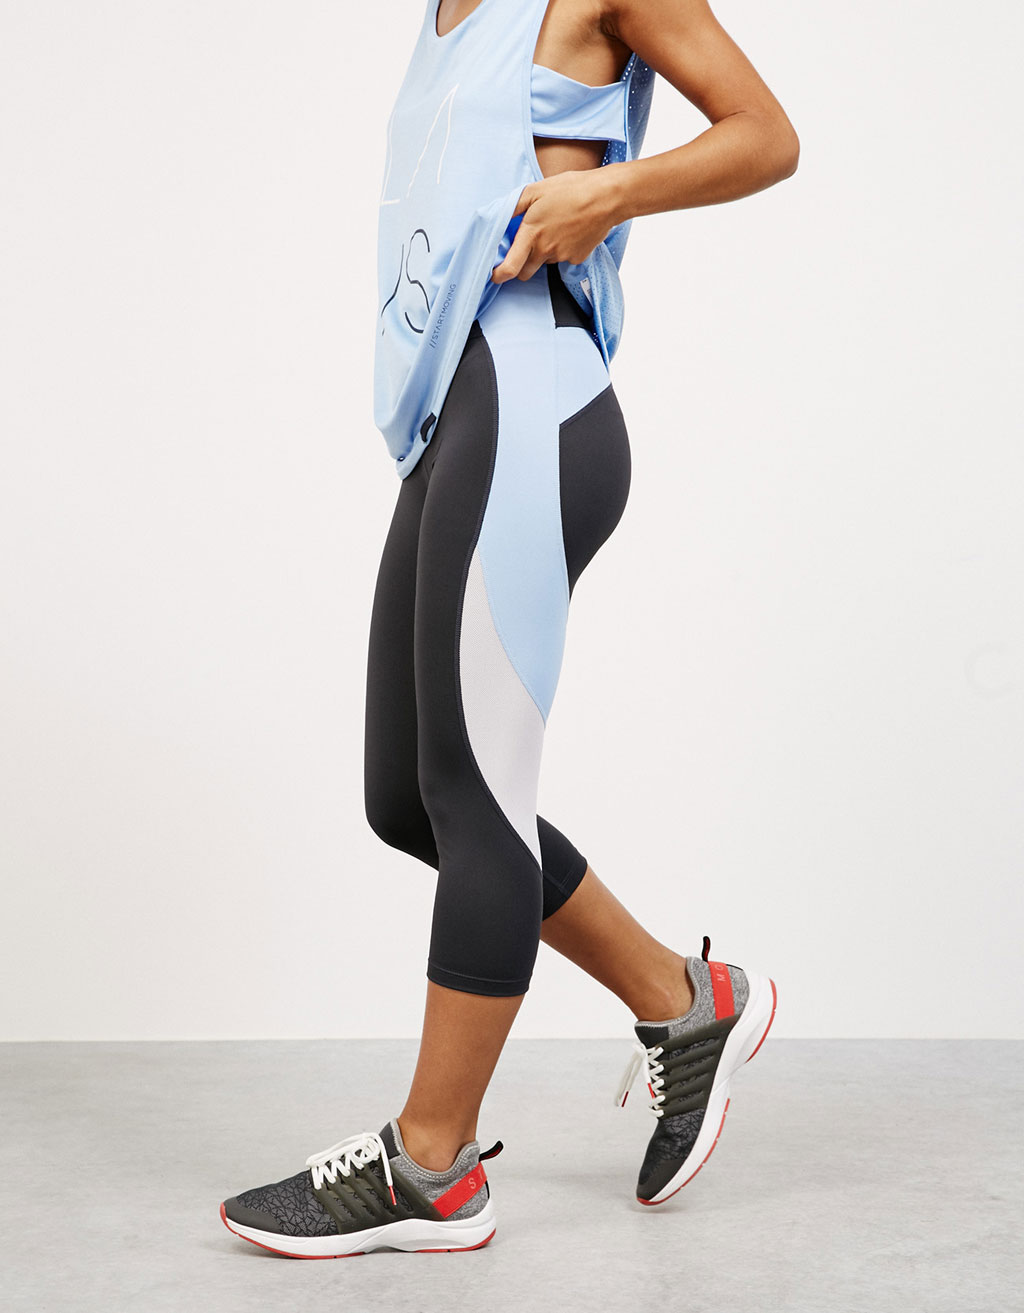 Capri technical sports leggings with side bands